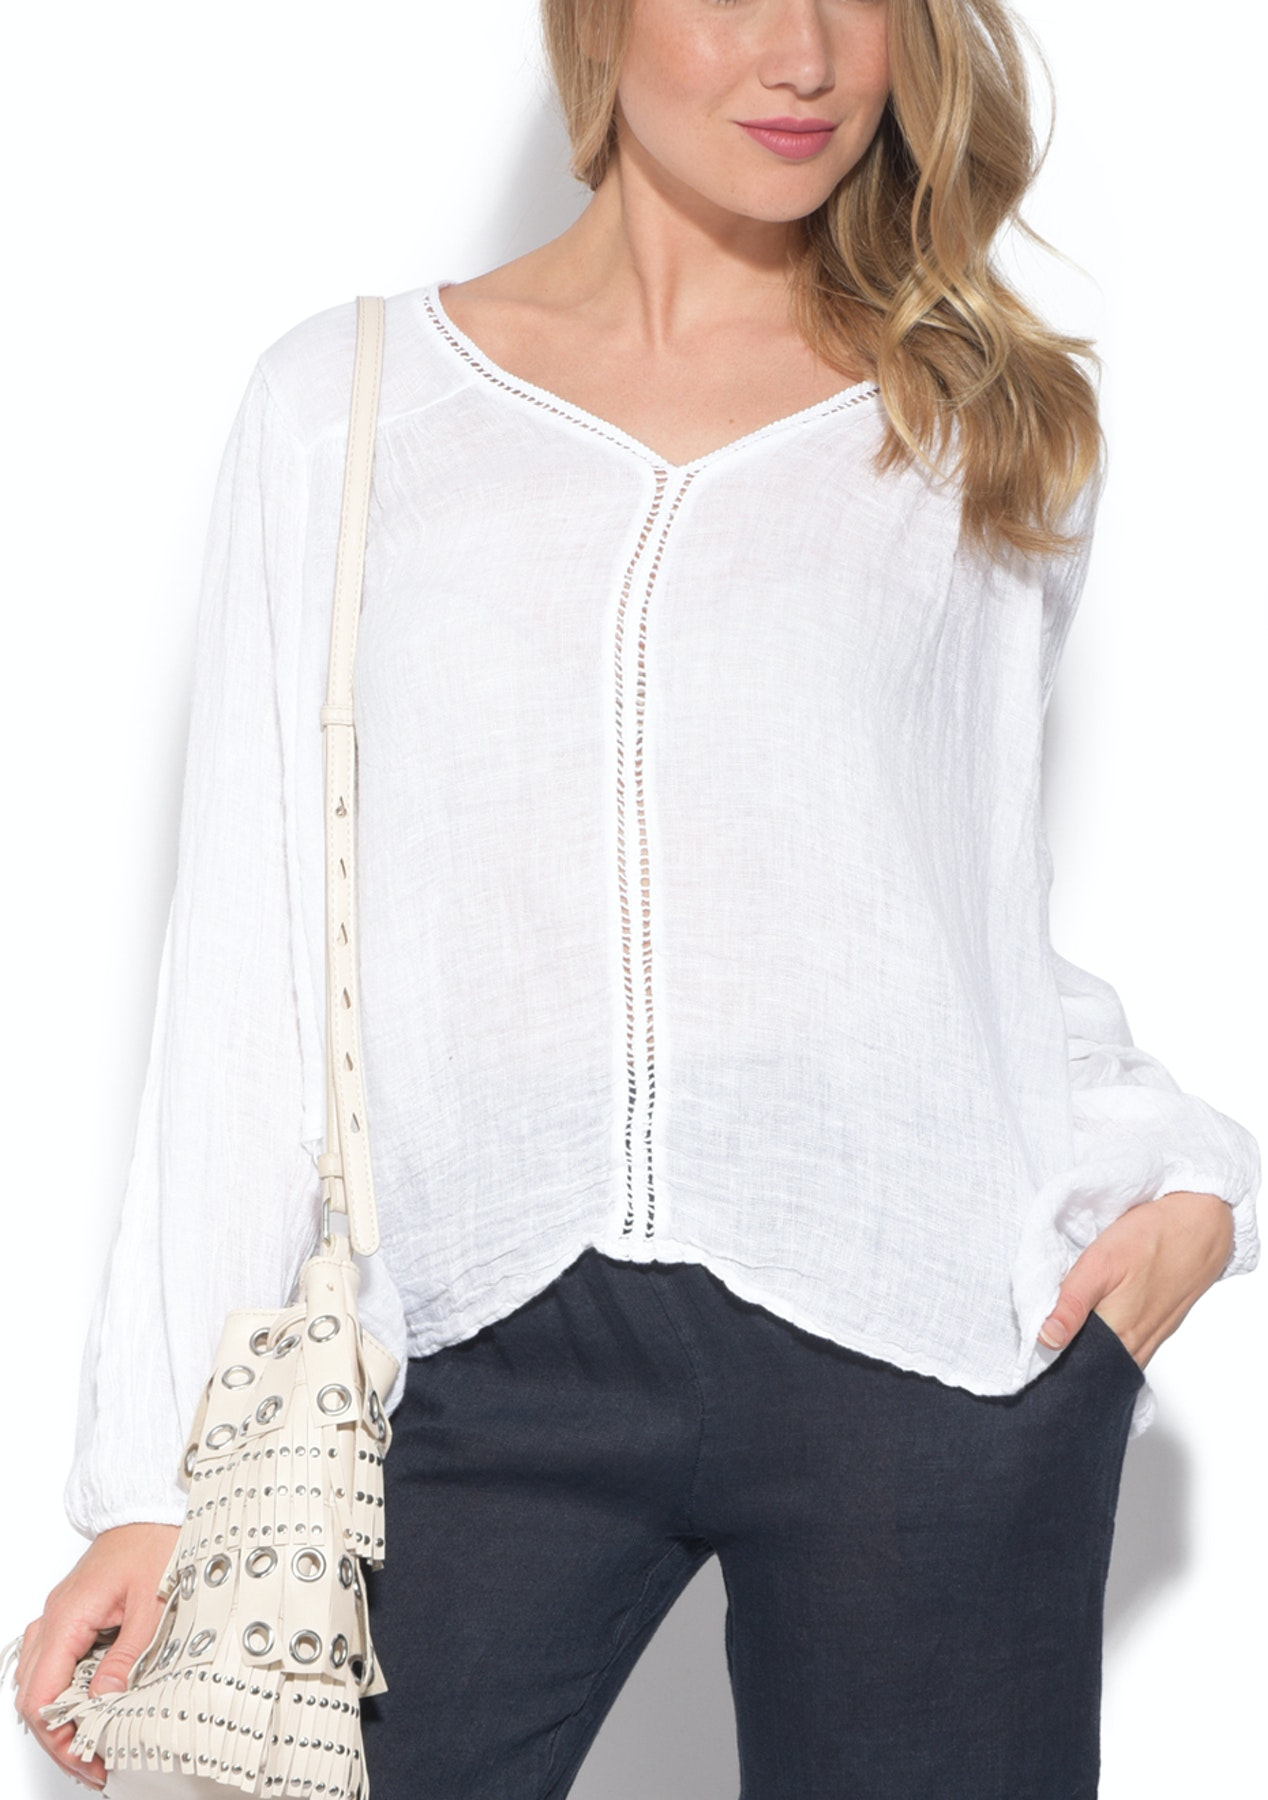 361f9553c3dd6 La fabrique du lin - Alice 100% Linen Top - White - Luxe Linen Looks Made  in Italy - Onceit